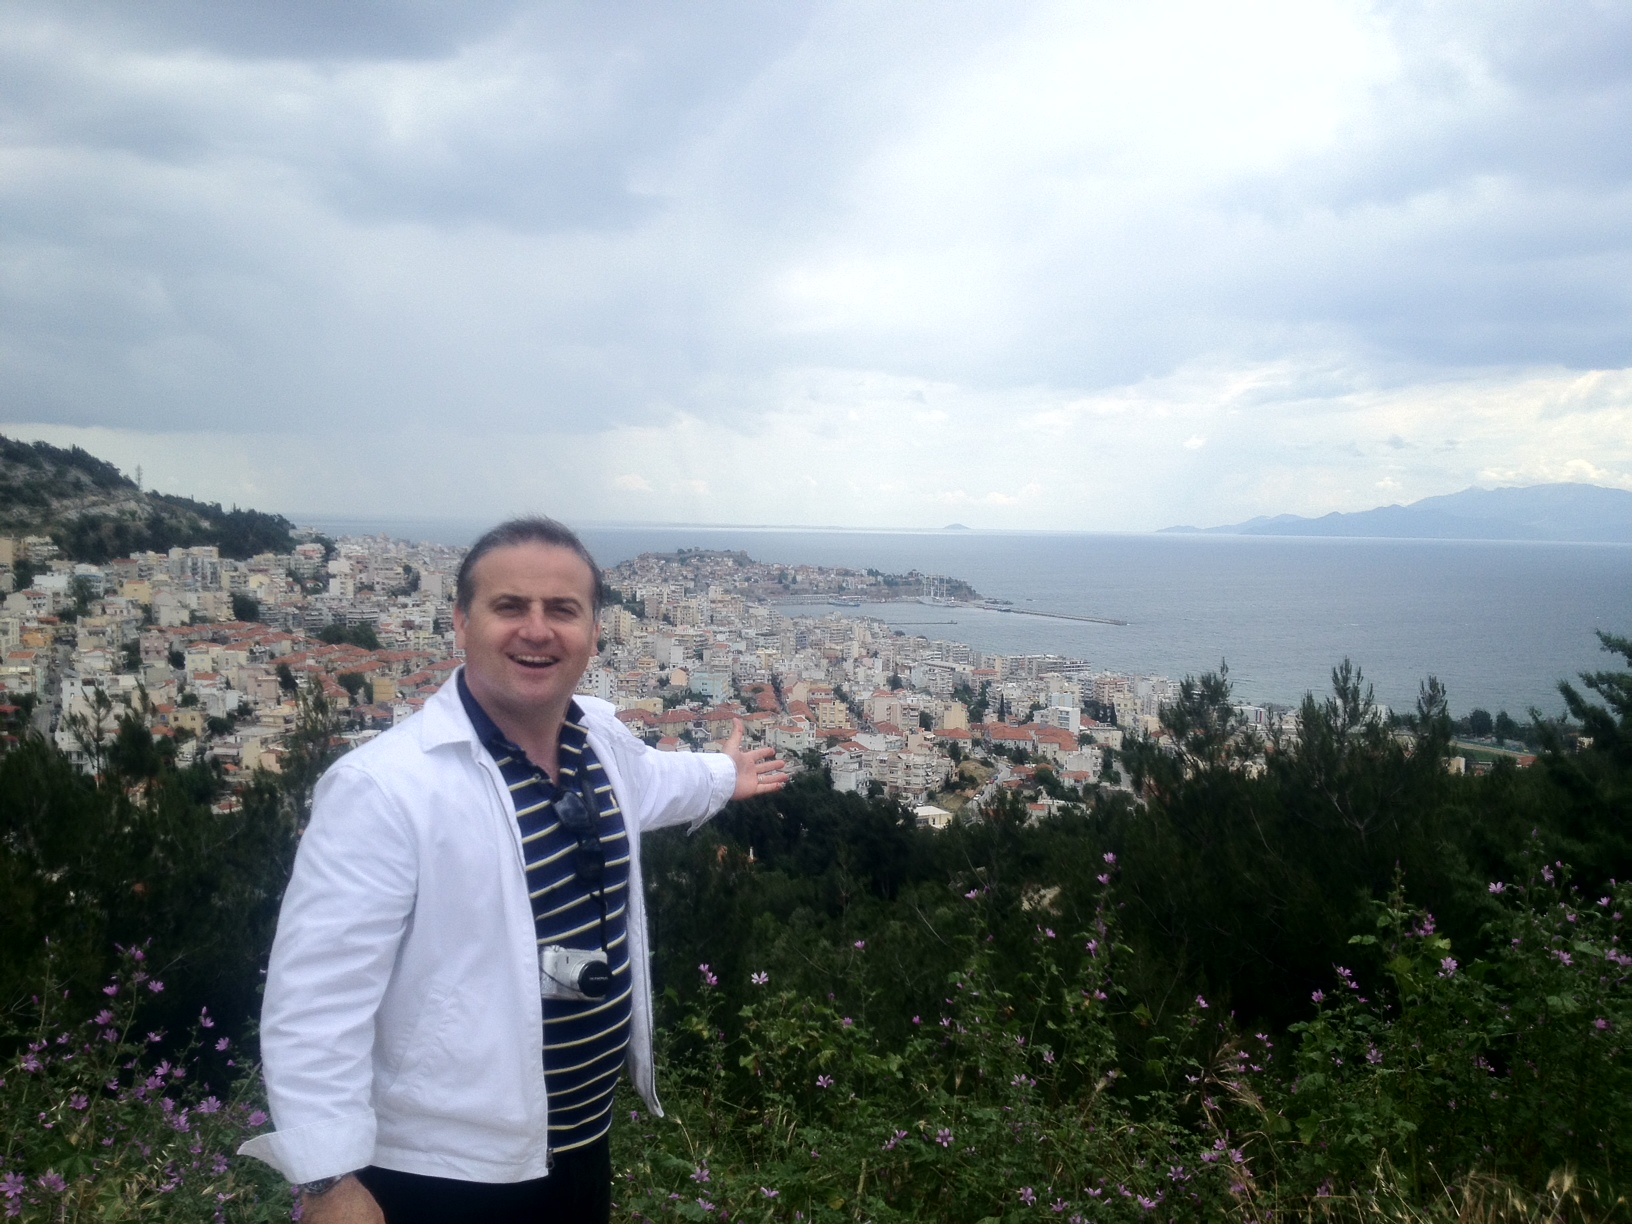 Ferit F.Kayrak, President of Vanguard Travel Services, invites all Christian Congregations to a once in a lifetime experience